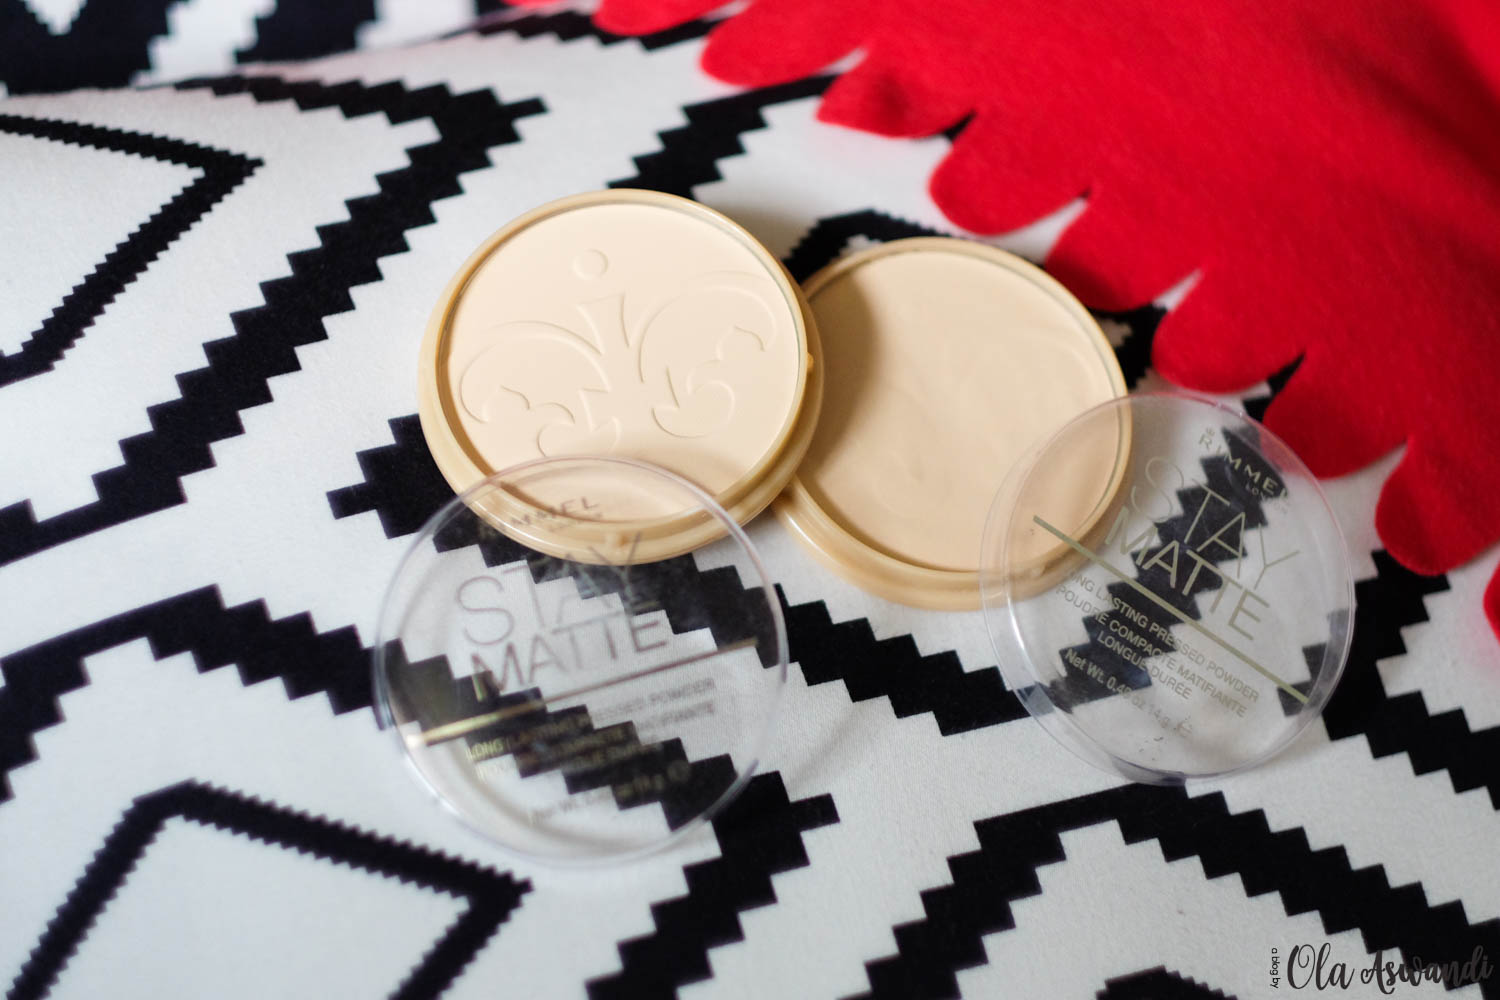 Rimmel-Lightroom-20 Review: Rimmel Stay Matte Pressed Powder